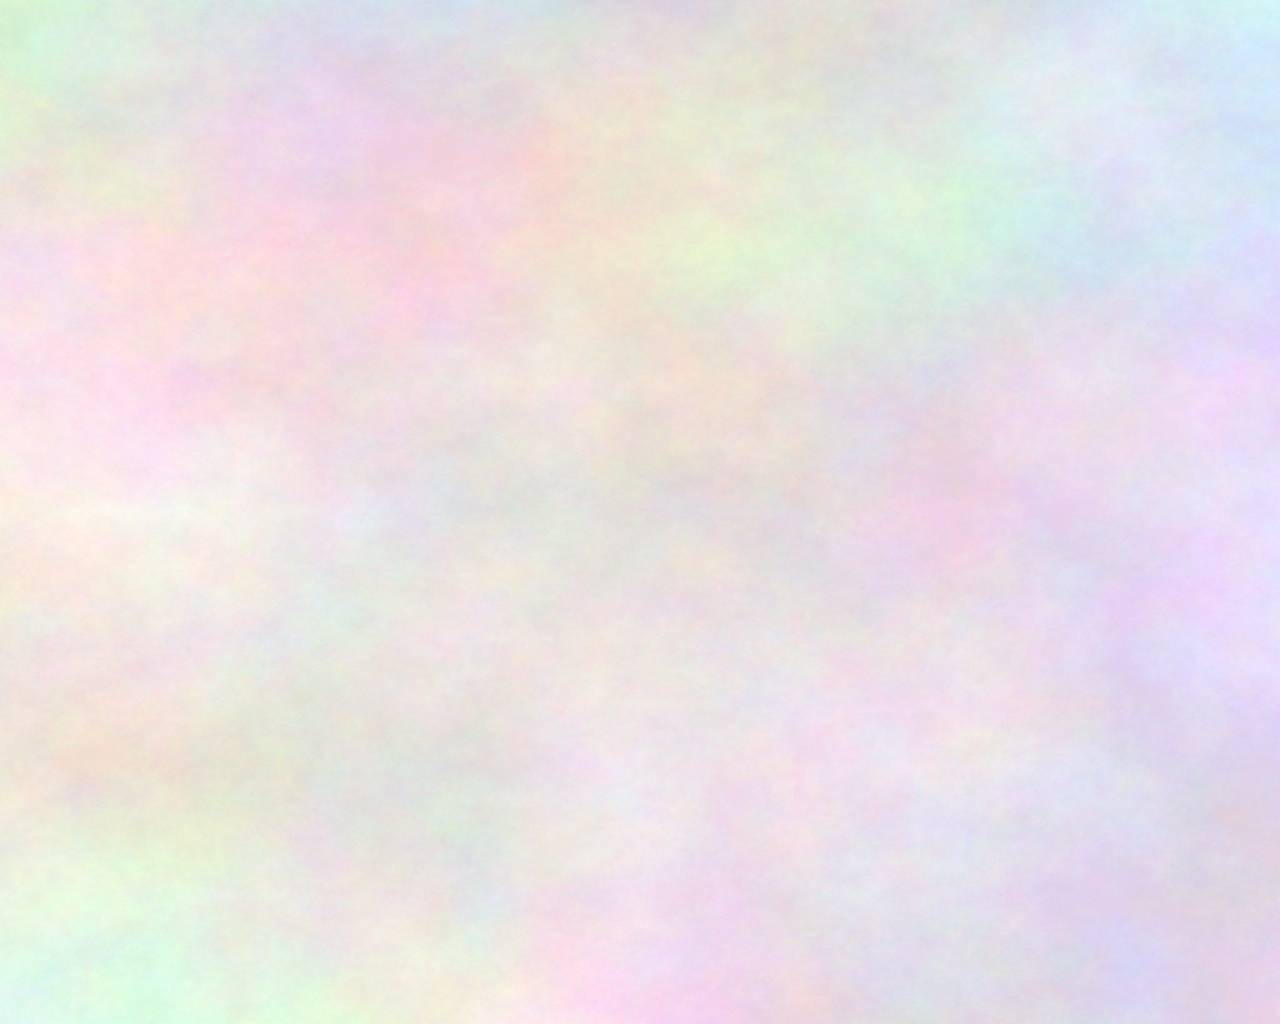 Pastel Colors Wallpapers 1280x1024